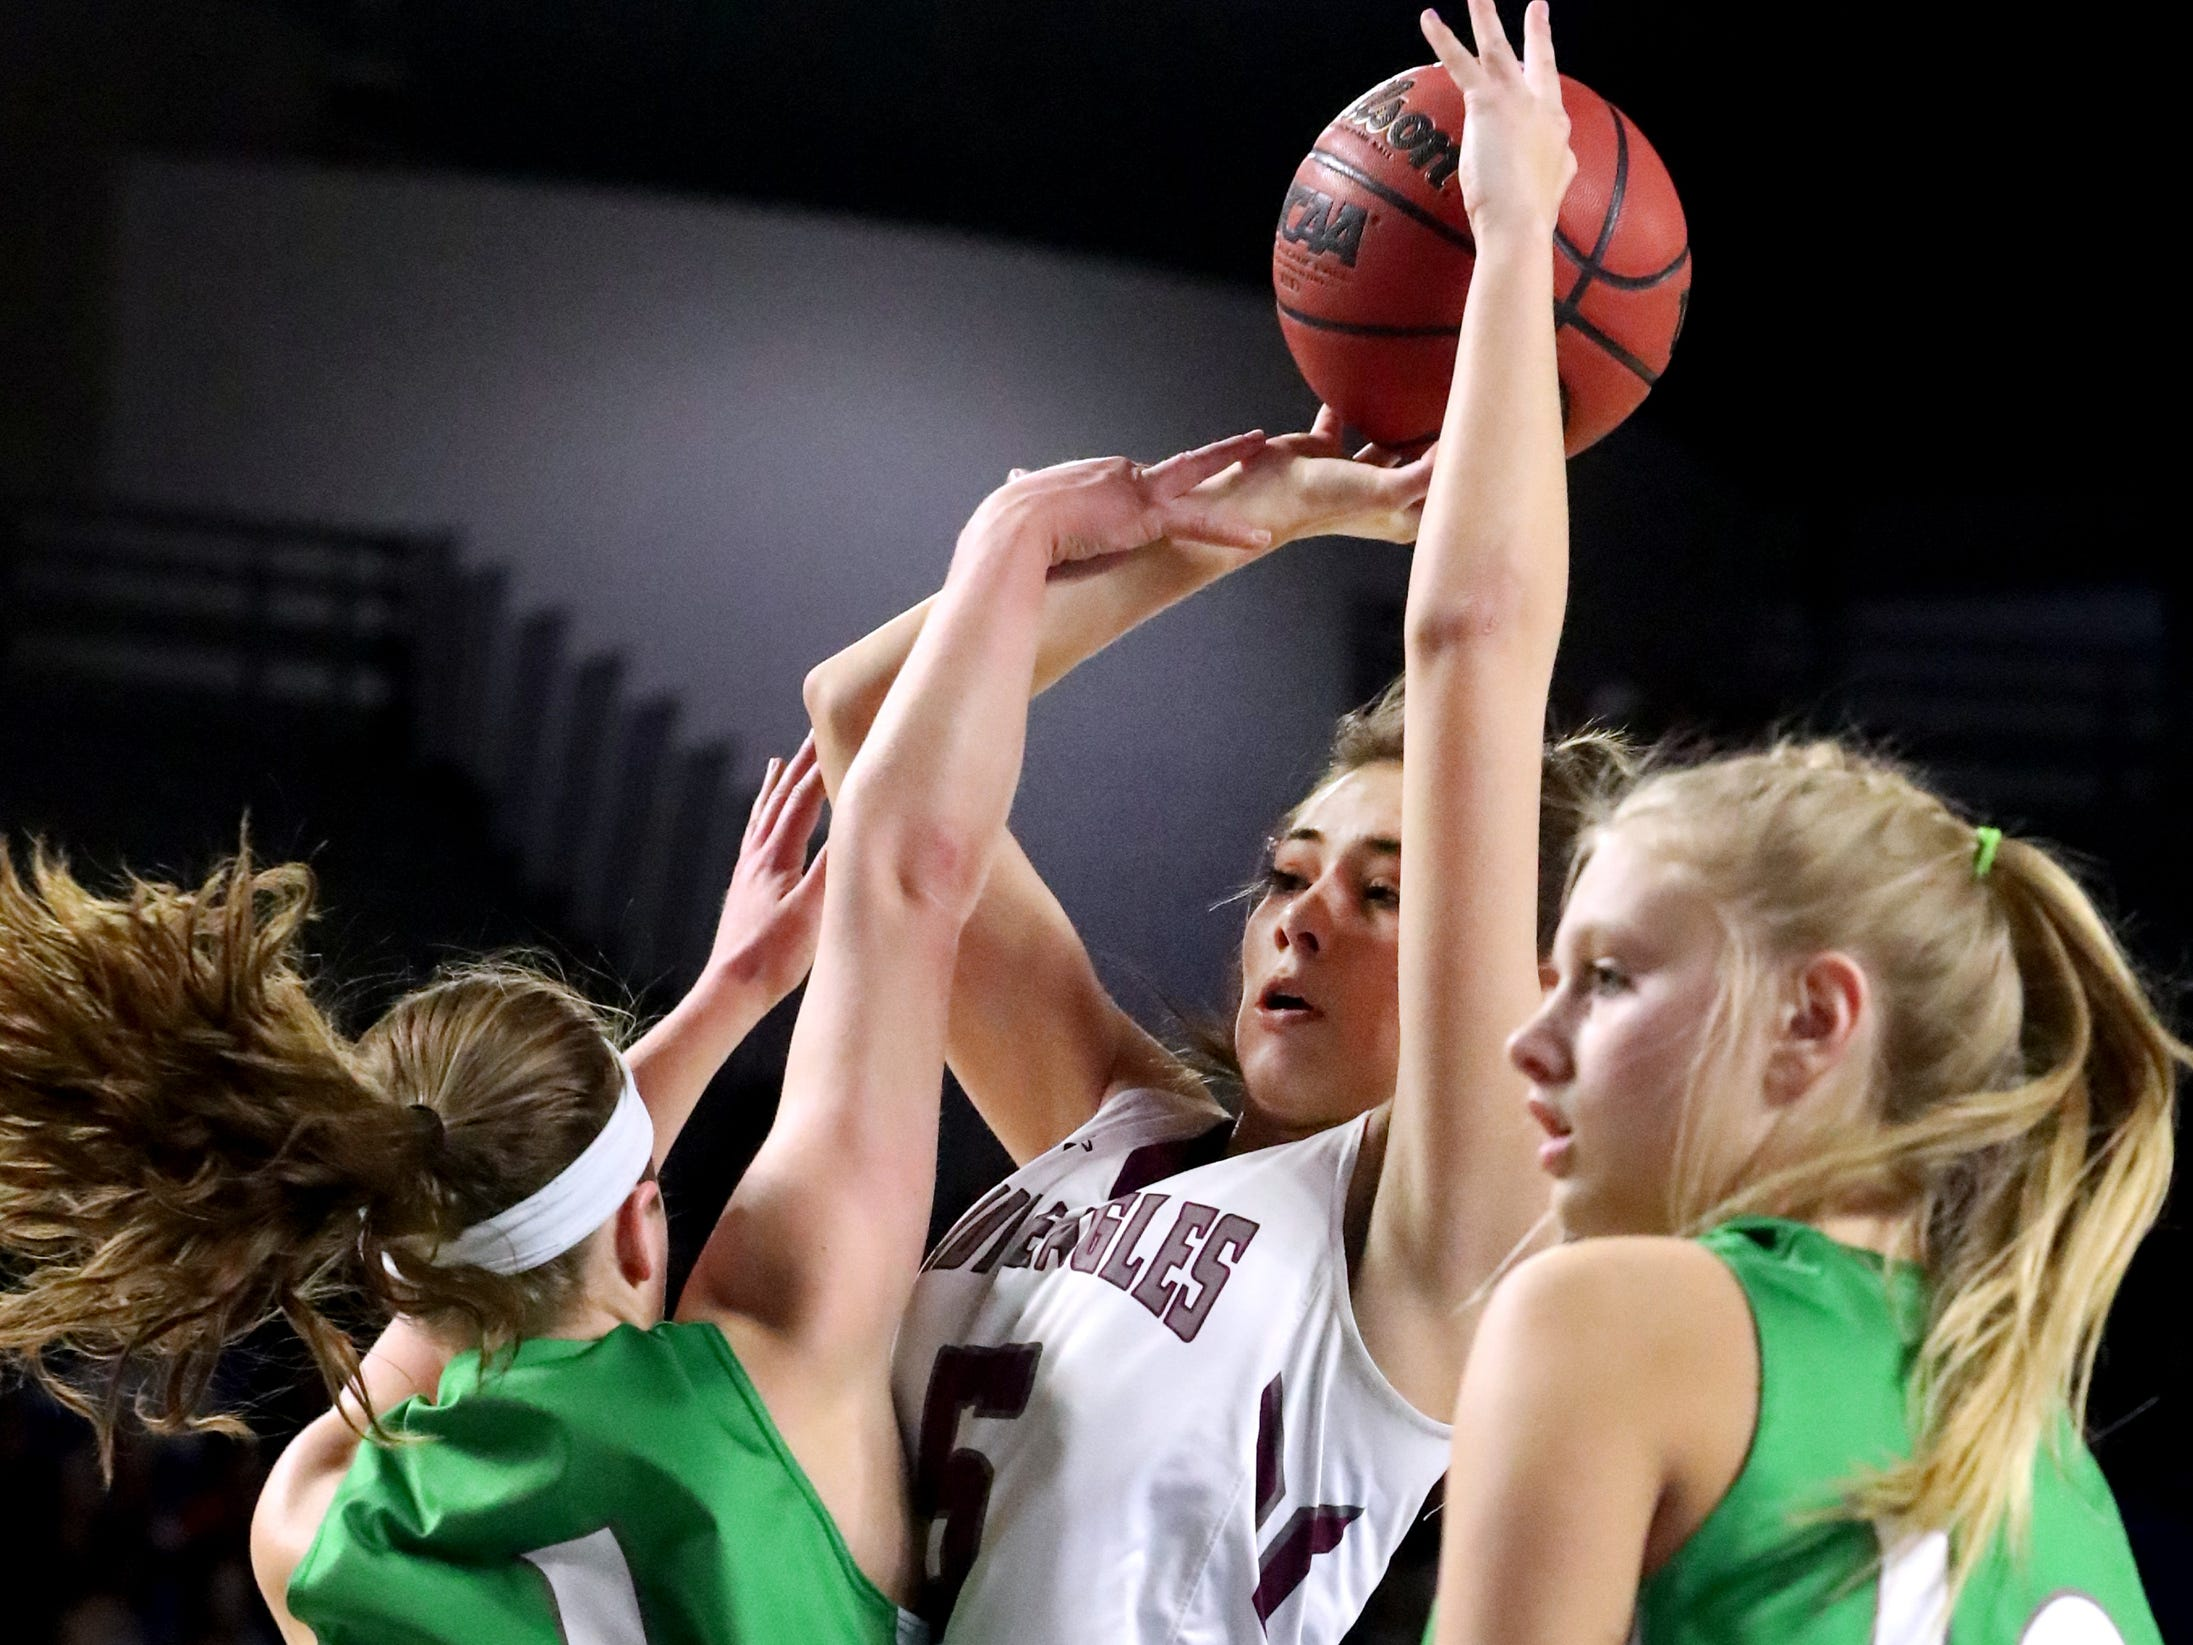 Eagleville's Elizabeth Thompson (5) shoots the ball between Midway's Caitlyn Ross (1) and Heaven Prinzi (10) during the quarterfinal round of the TSSAA Div. 1 Class A Girls State Tournament, on Thursday, March 7, 2019, at Murphy Center in Murfreesboro, Tenn.